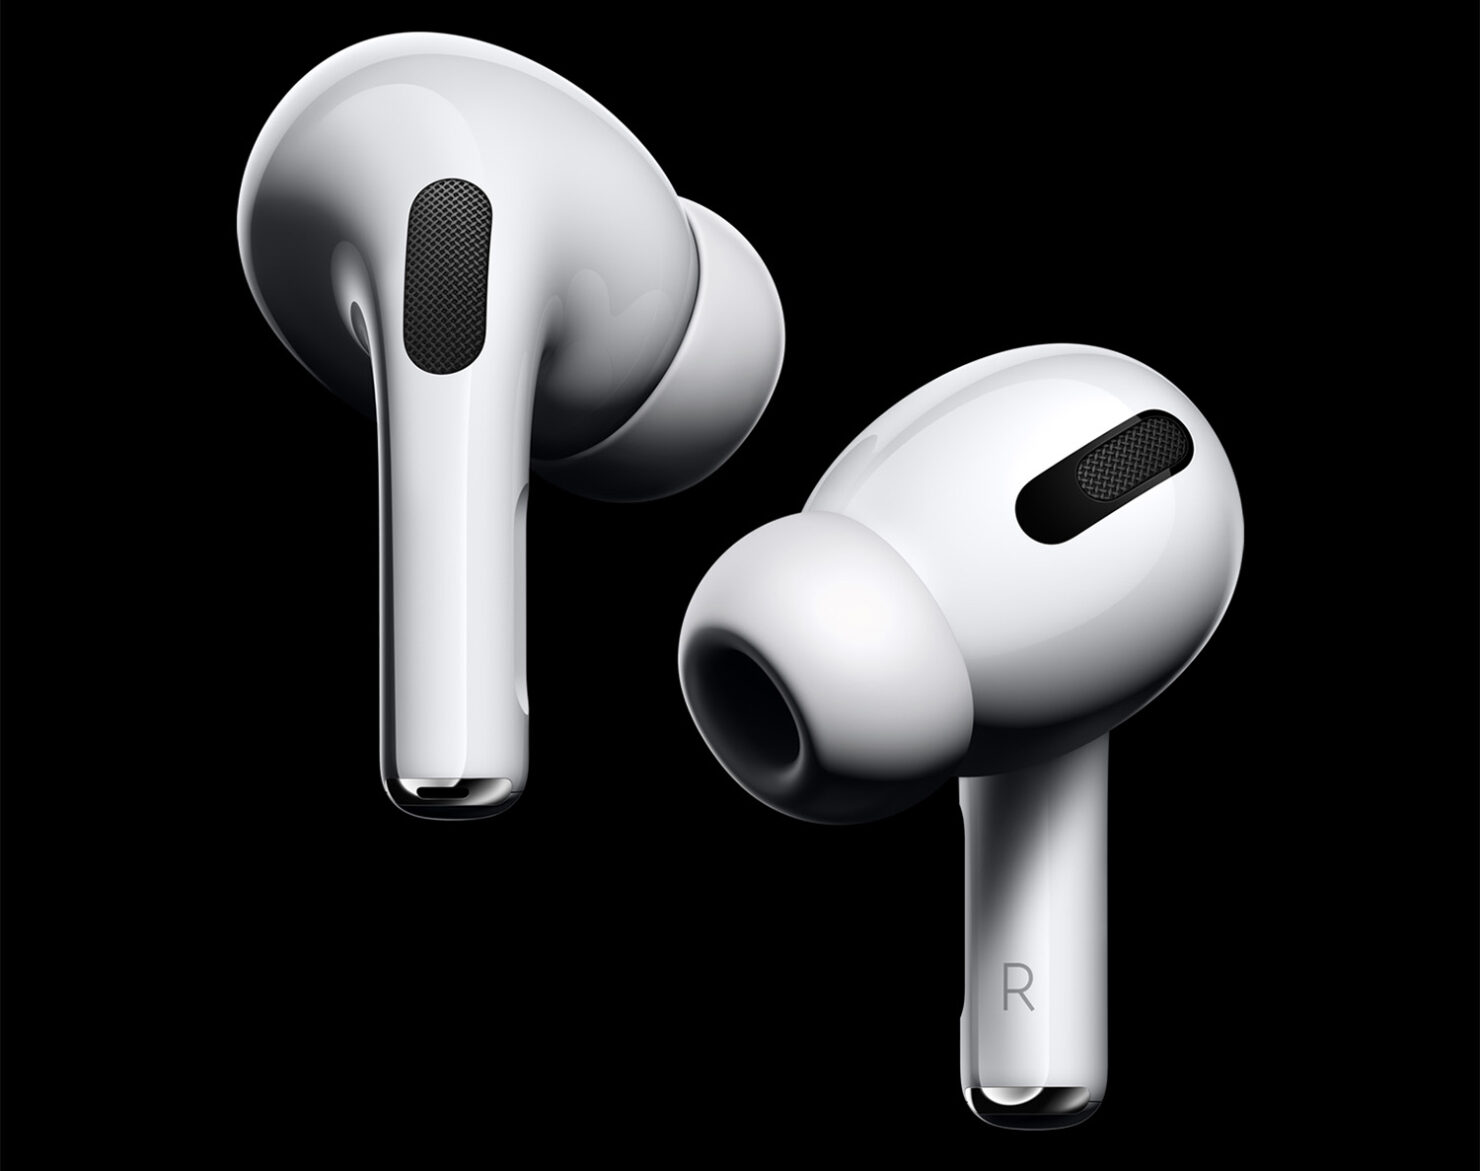 New AirPods Features Include Automatic Switching Between Devices and Calls, With Spatial Audio Coming to AirPods Pro